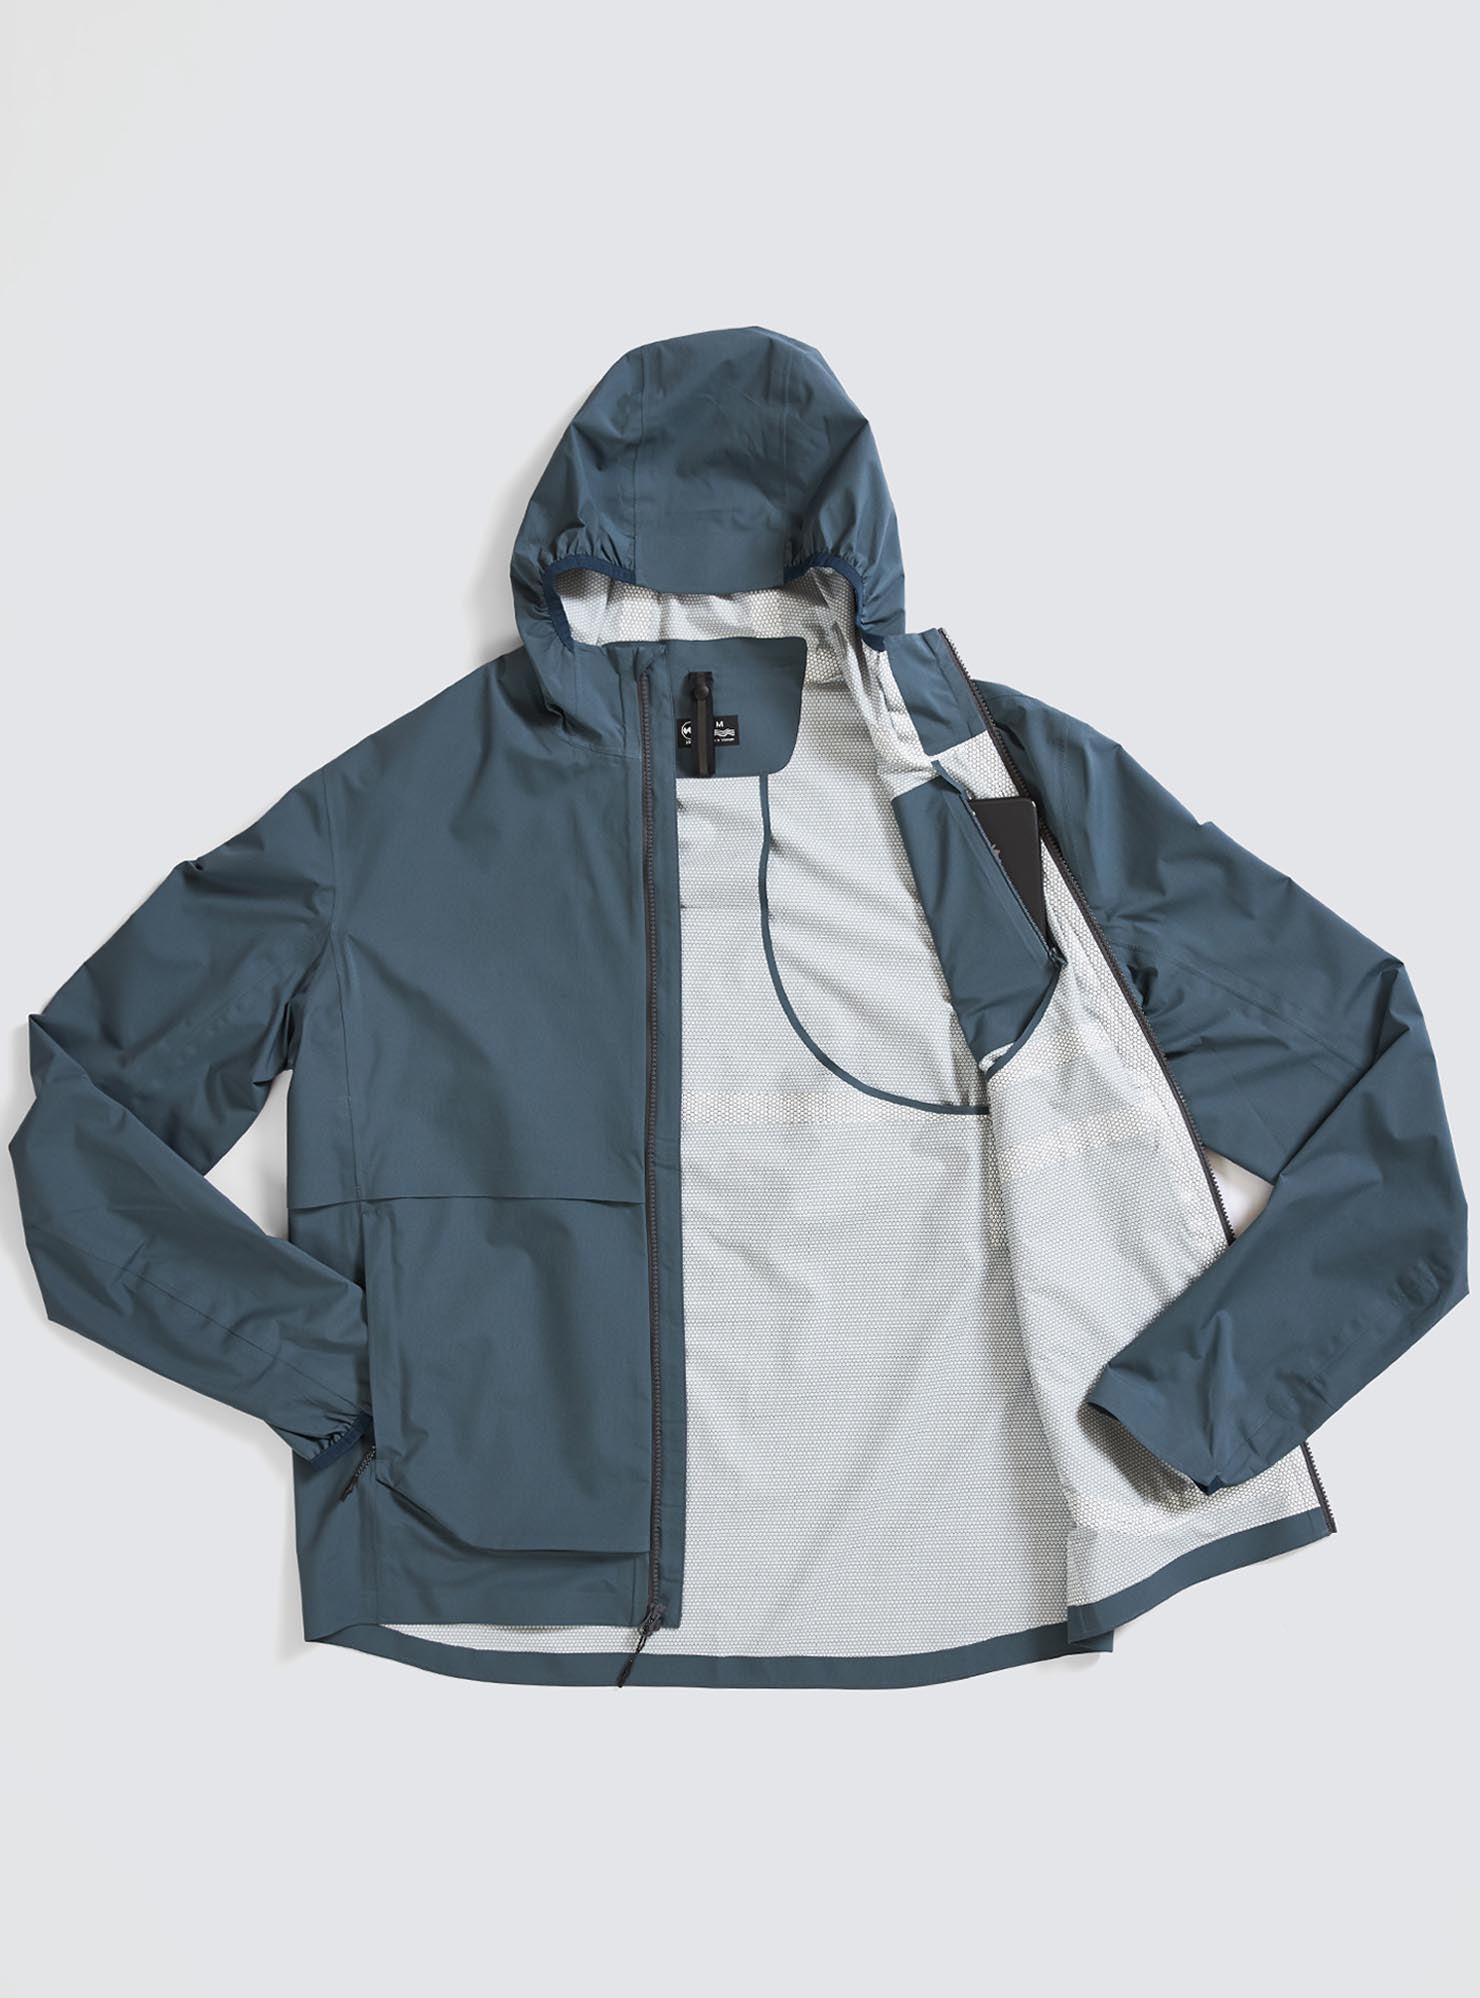 M's Rainrunner Pack Jacket in Thunderhead